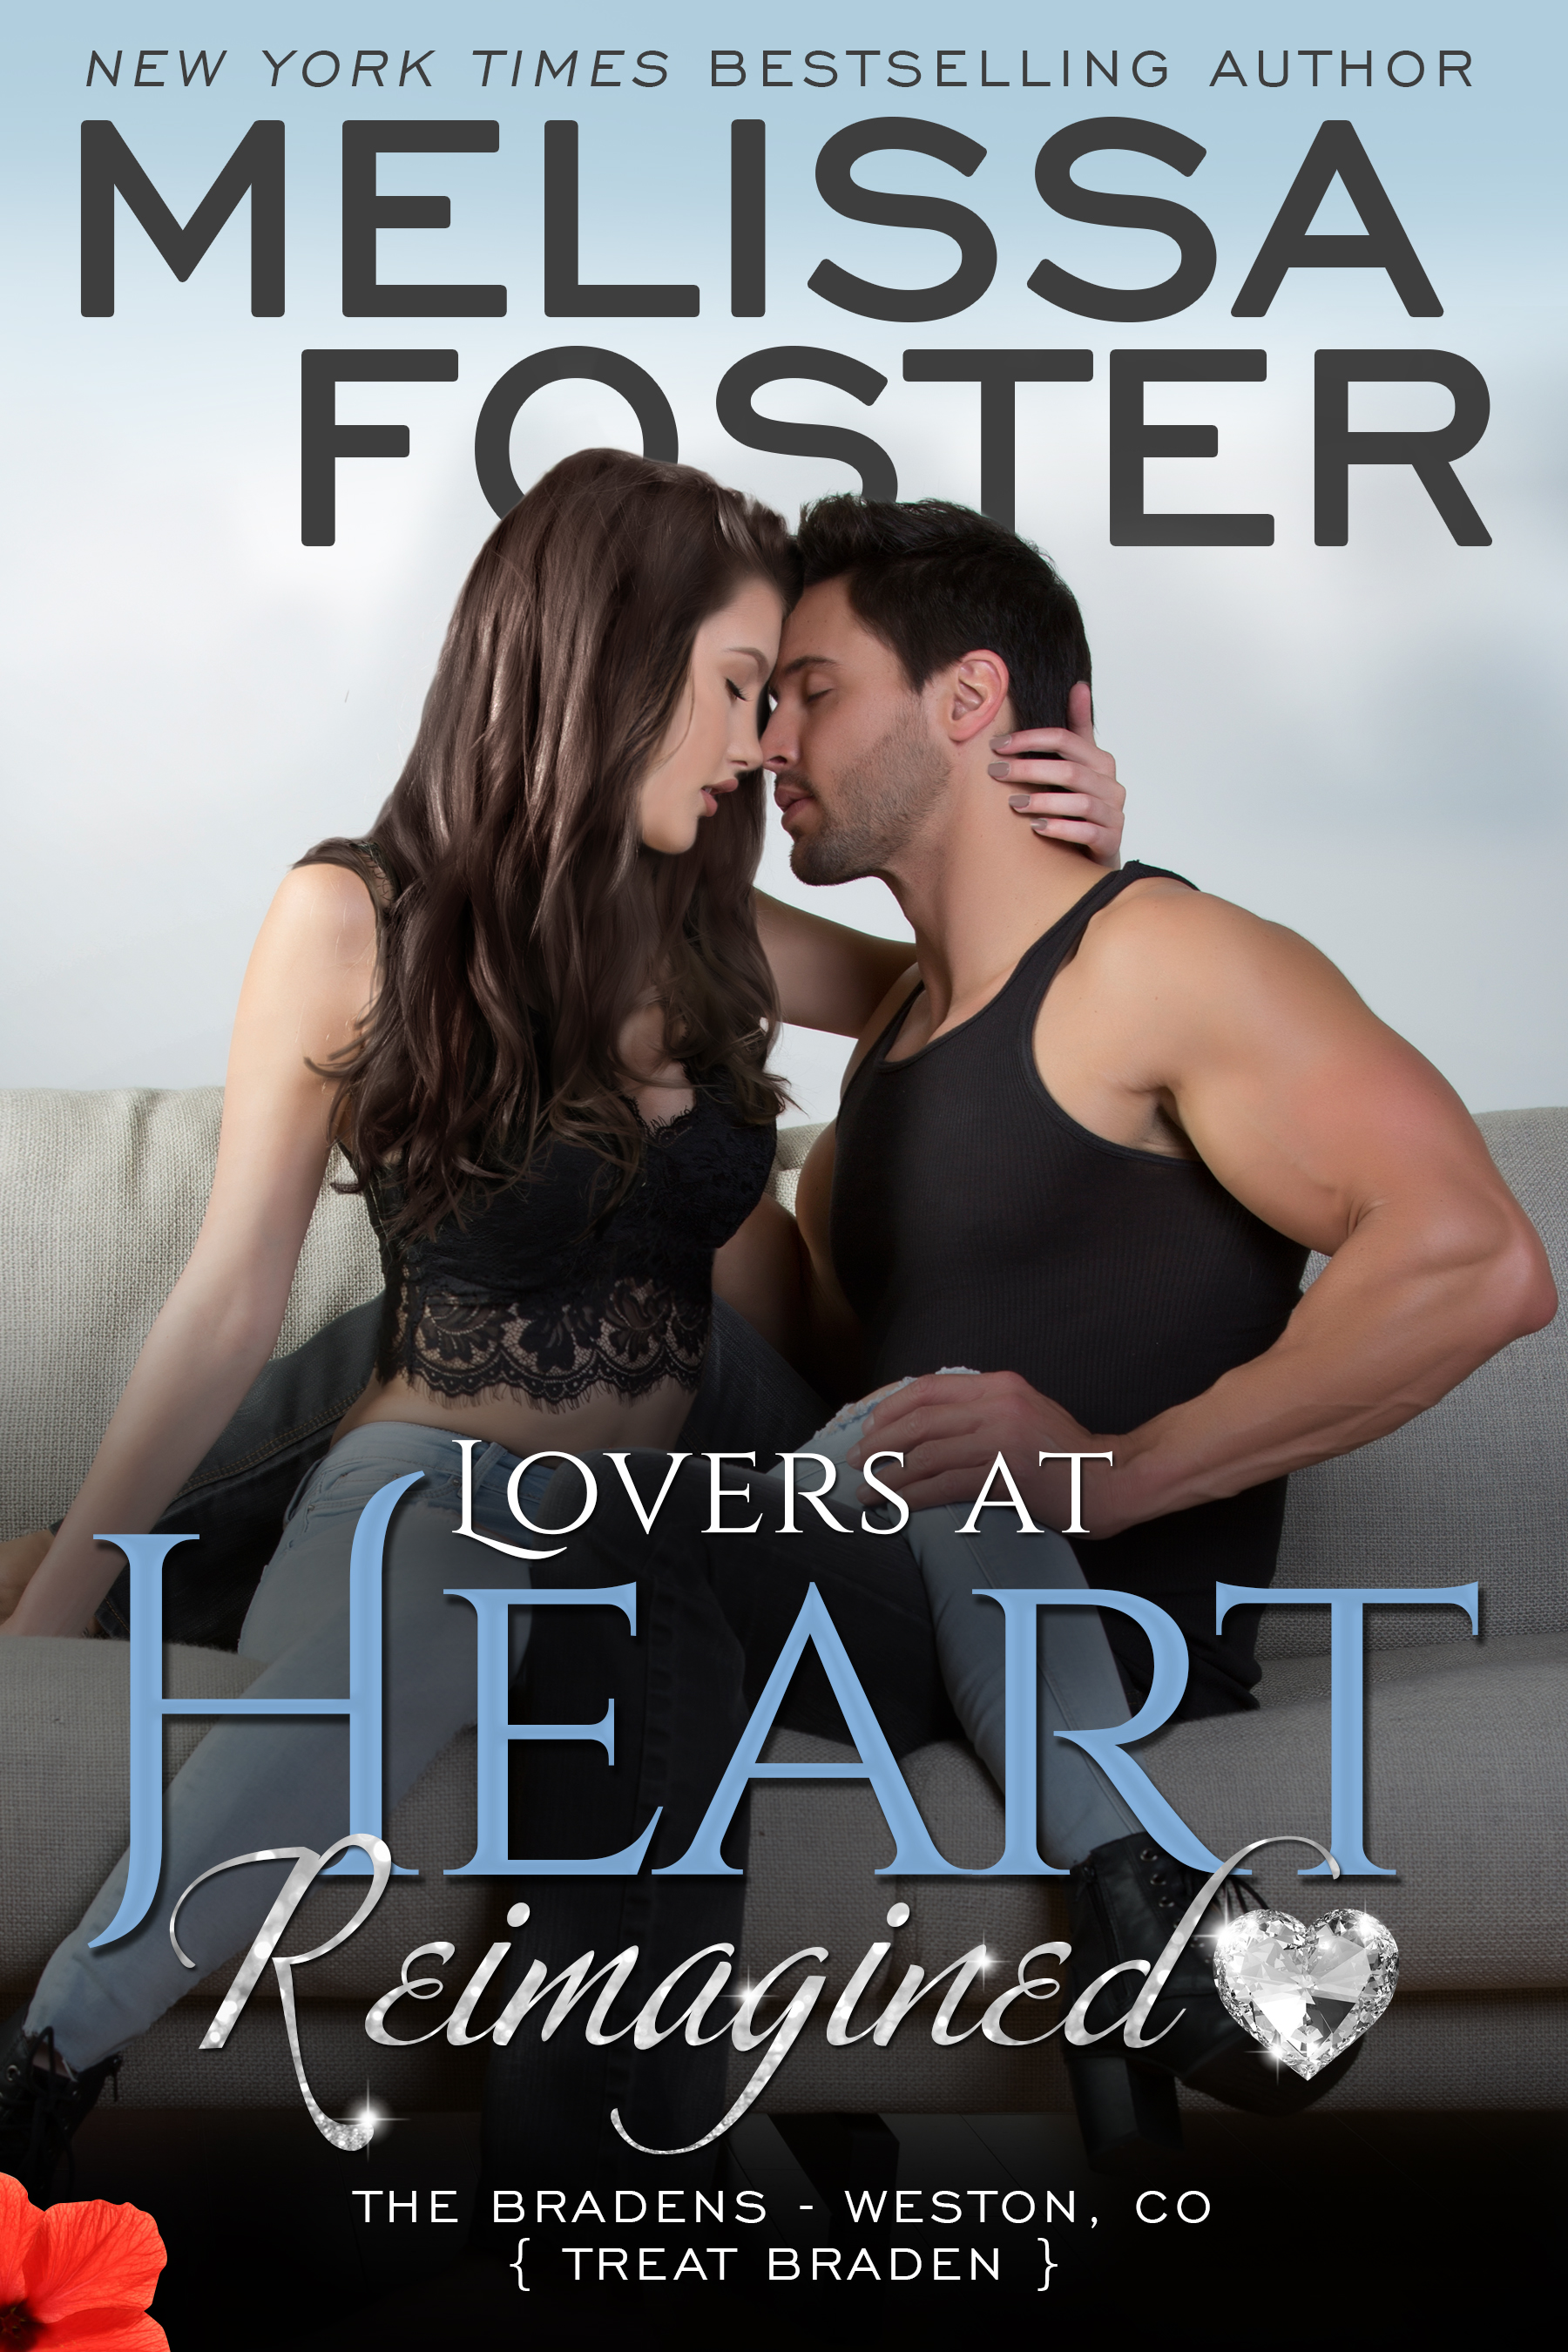 Blog Tour & Giveaway: Lovers at Heart, Reimagined by Melissa Foster